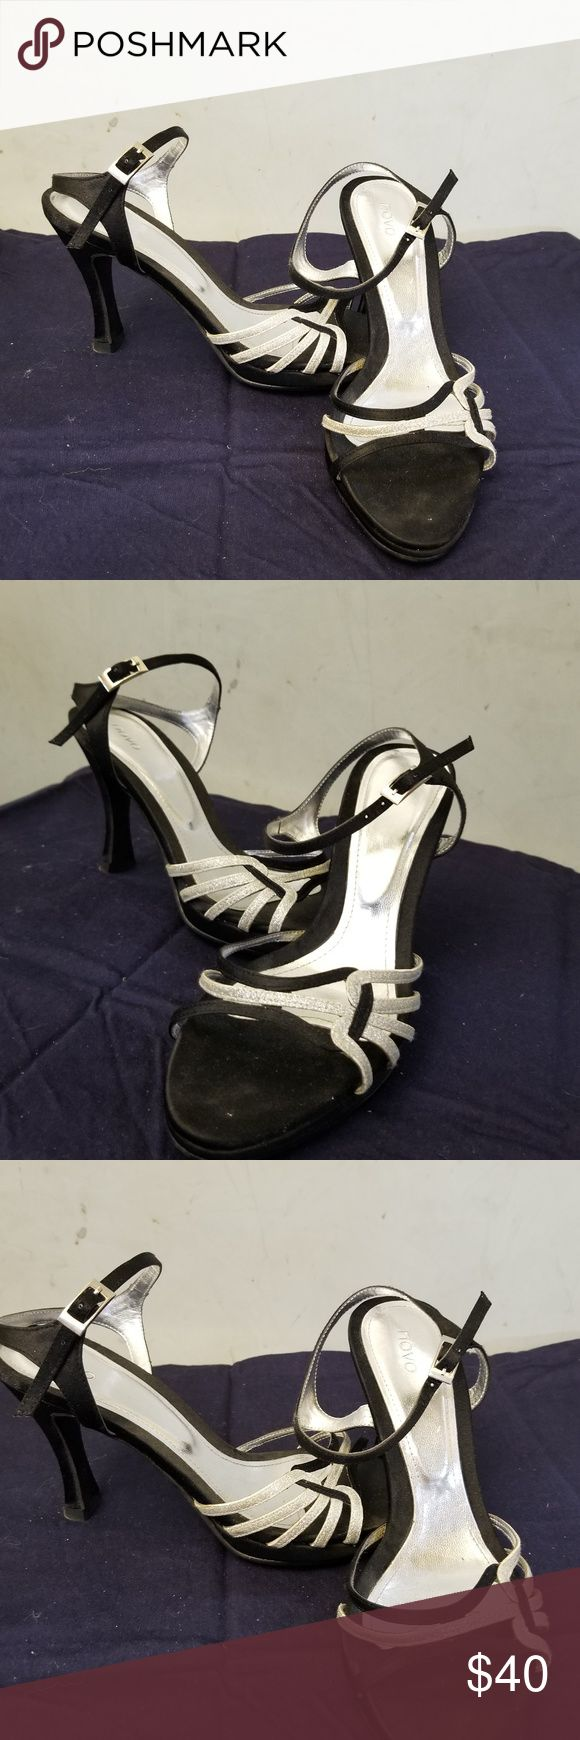 NWOT NOVO dress sandals NWOT in perfect condition brand new NOVO black and silver dress sandals no box... Novo Shoes Sandals